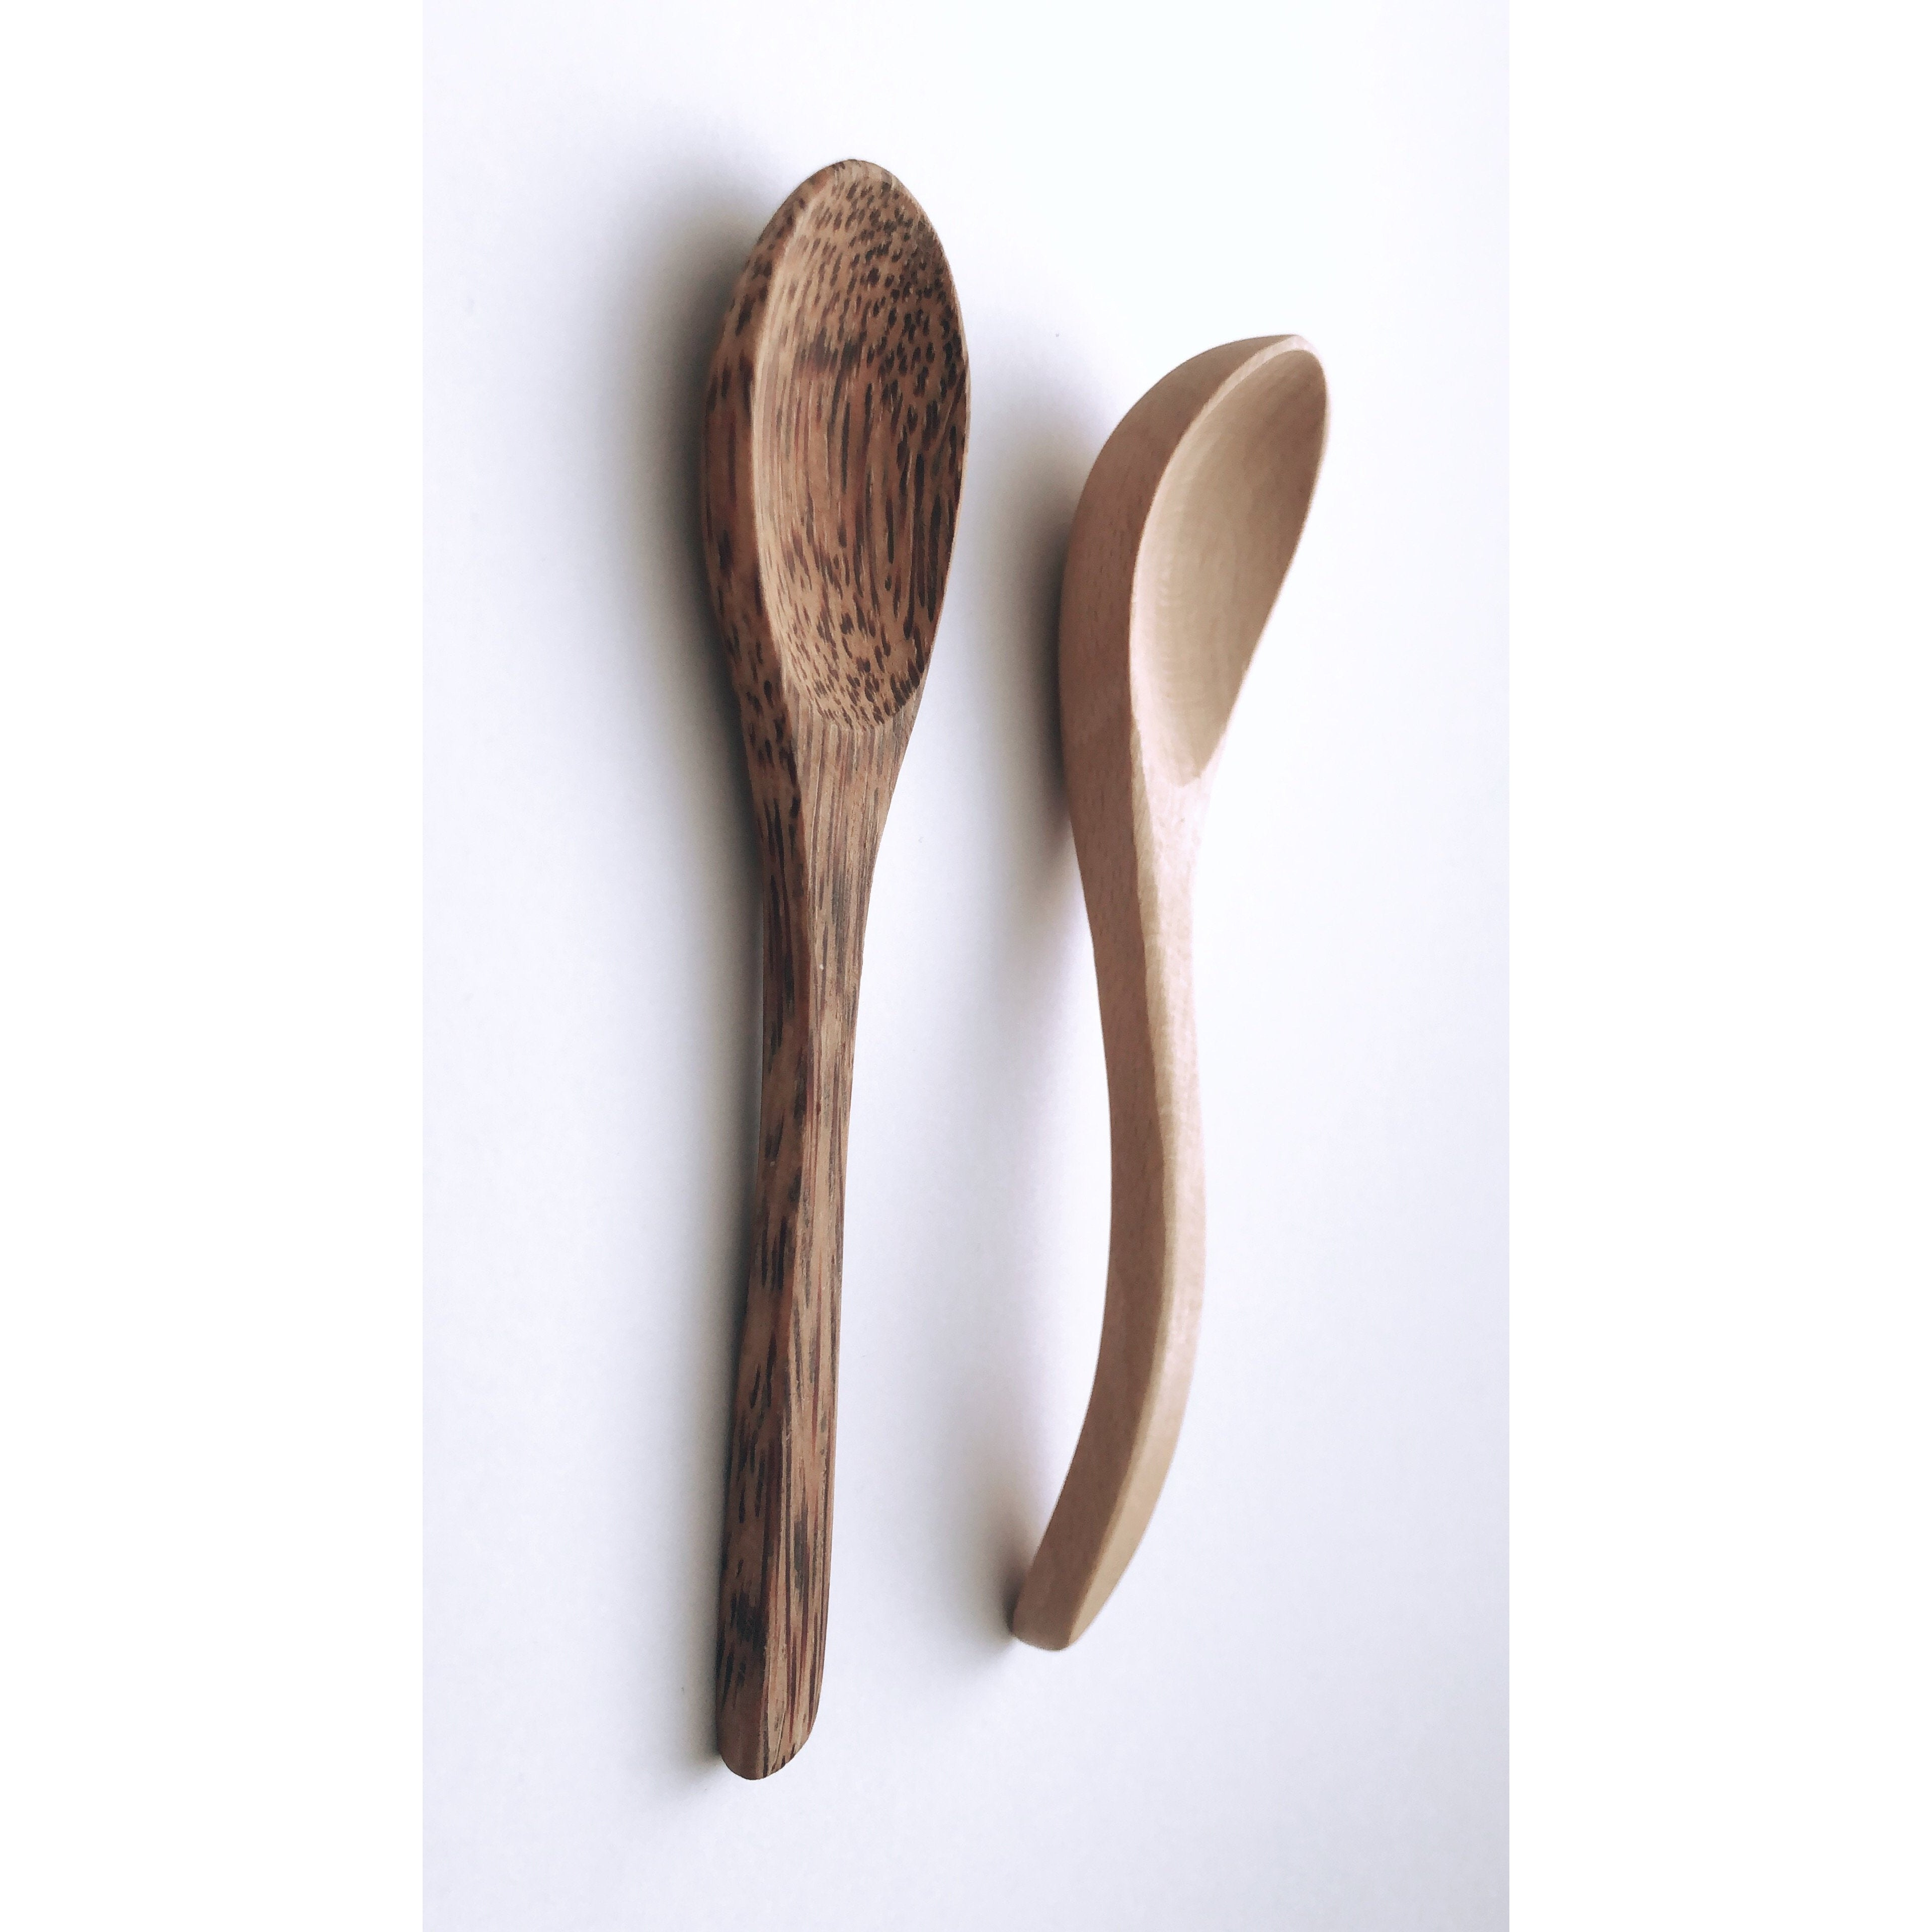 Soup spoons set of 4